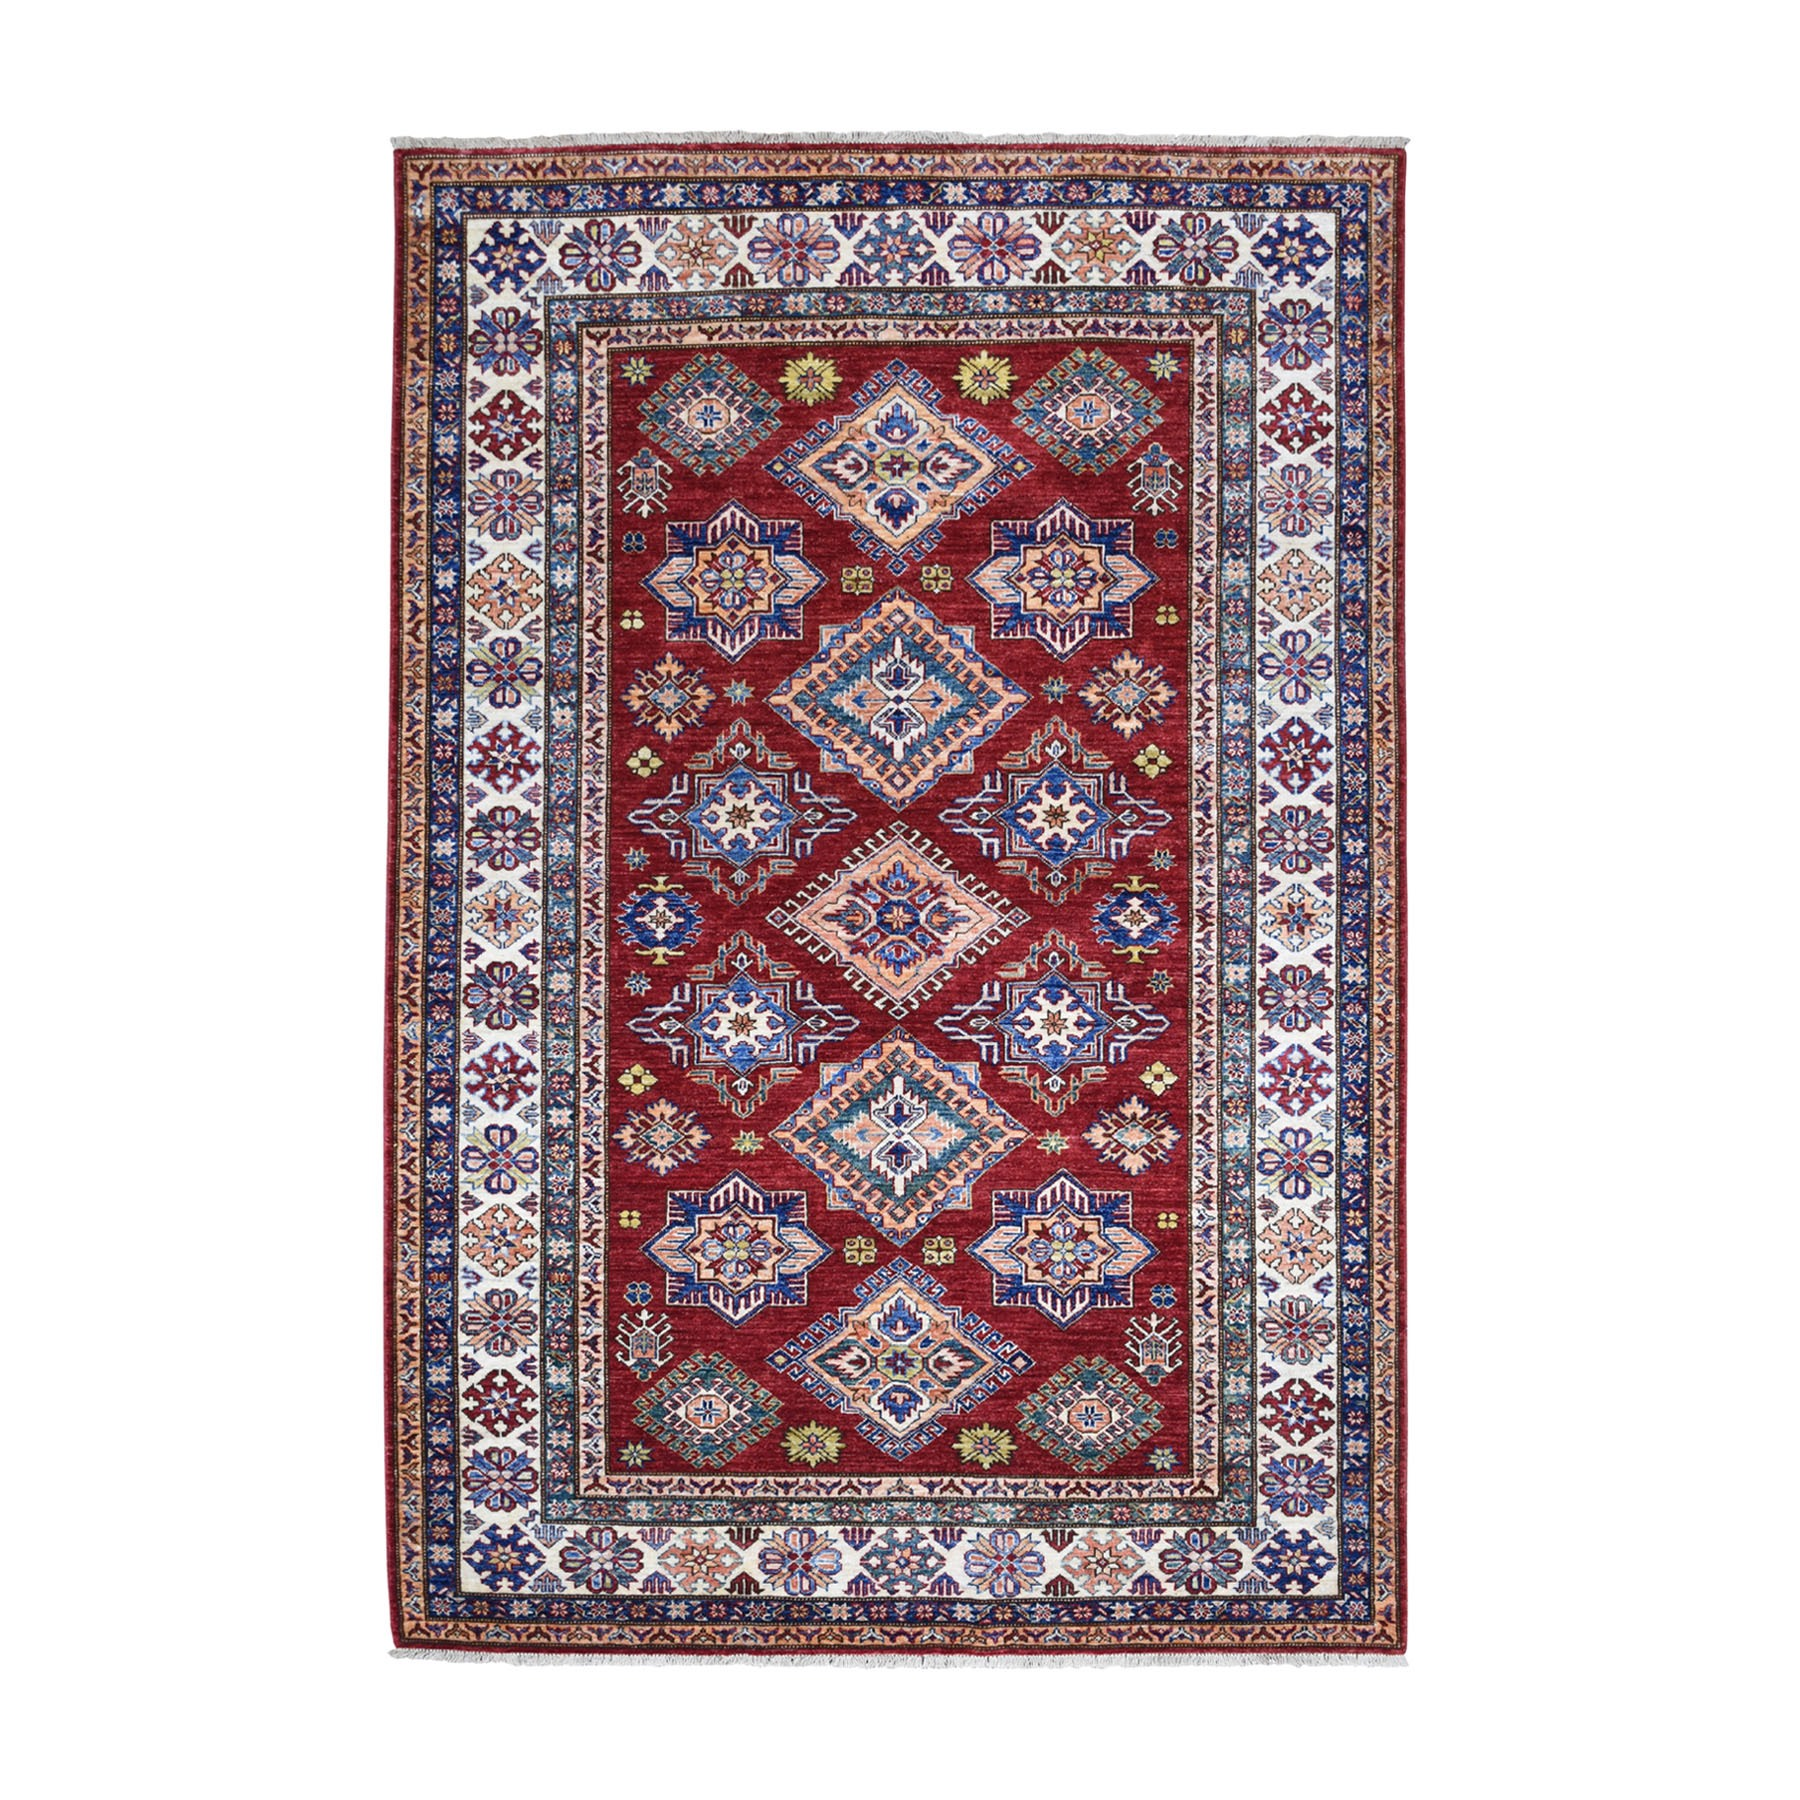 "5'8""X8'2"" Red Super Kazak Pure Wool Geometric Design Hand Knotted Oriental Rug moaead8d"